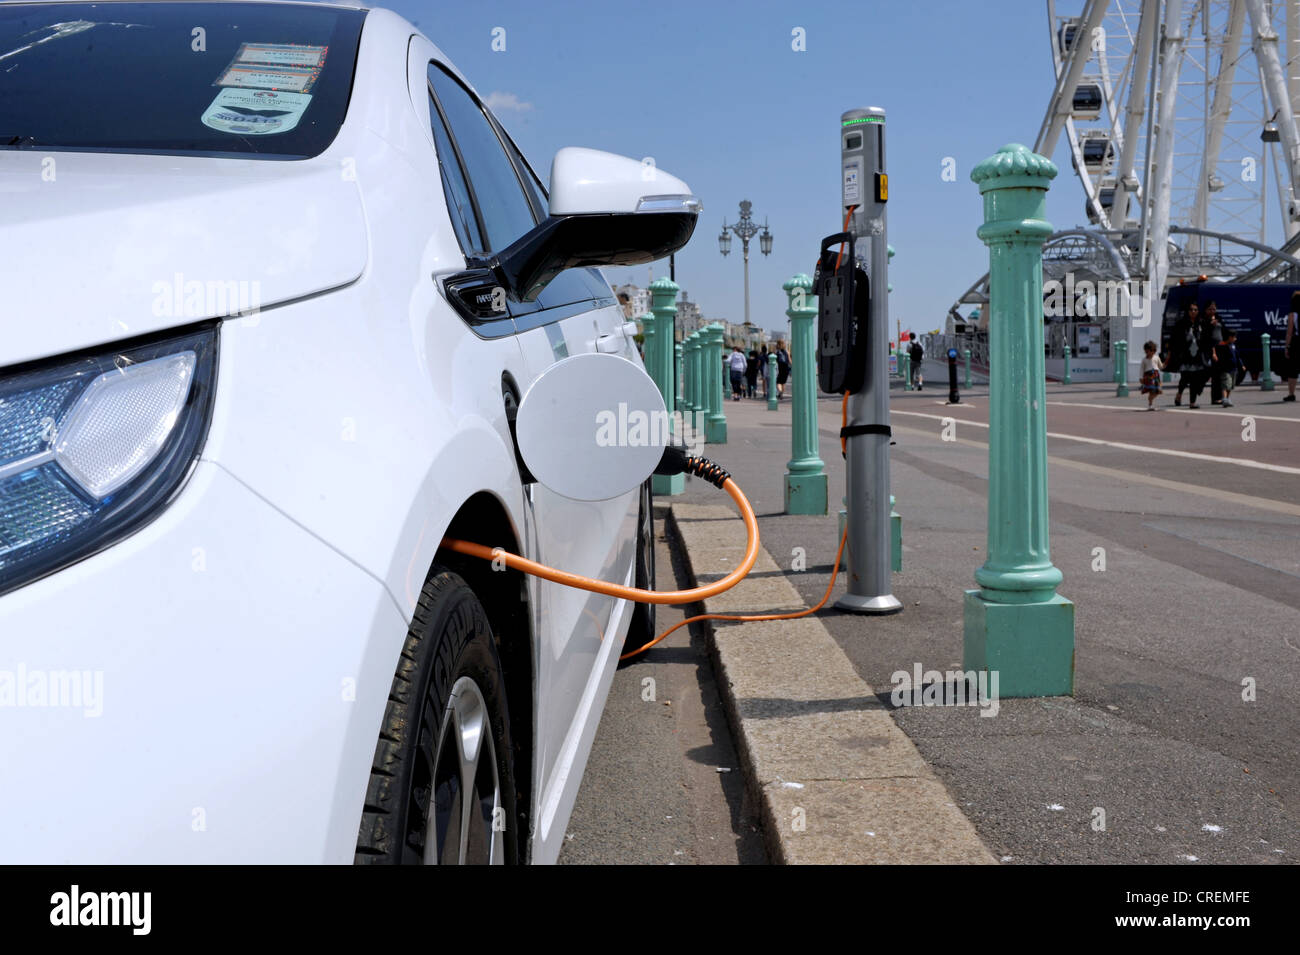 Car plugged into electric power charging point Brighton seafront UK Stock Photo